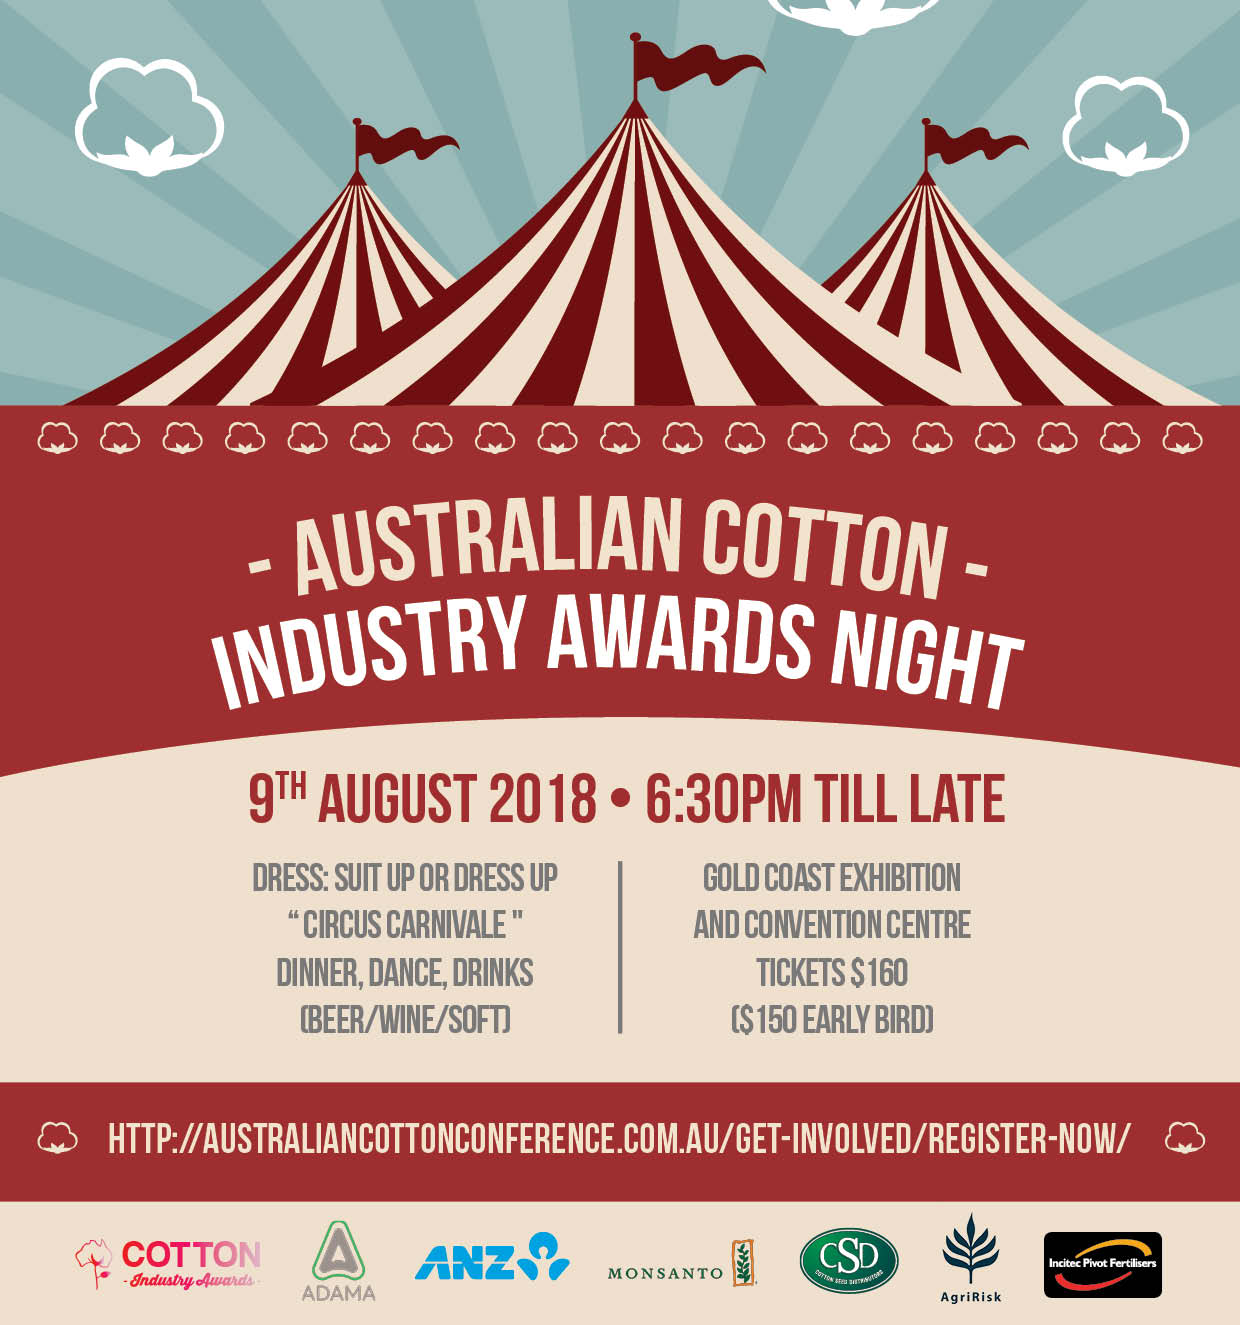 Australian Cotton Industry Awards Night